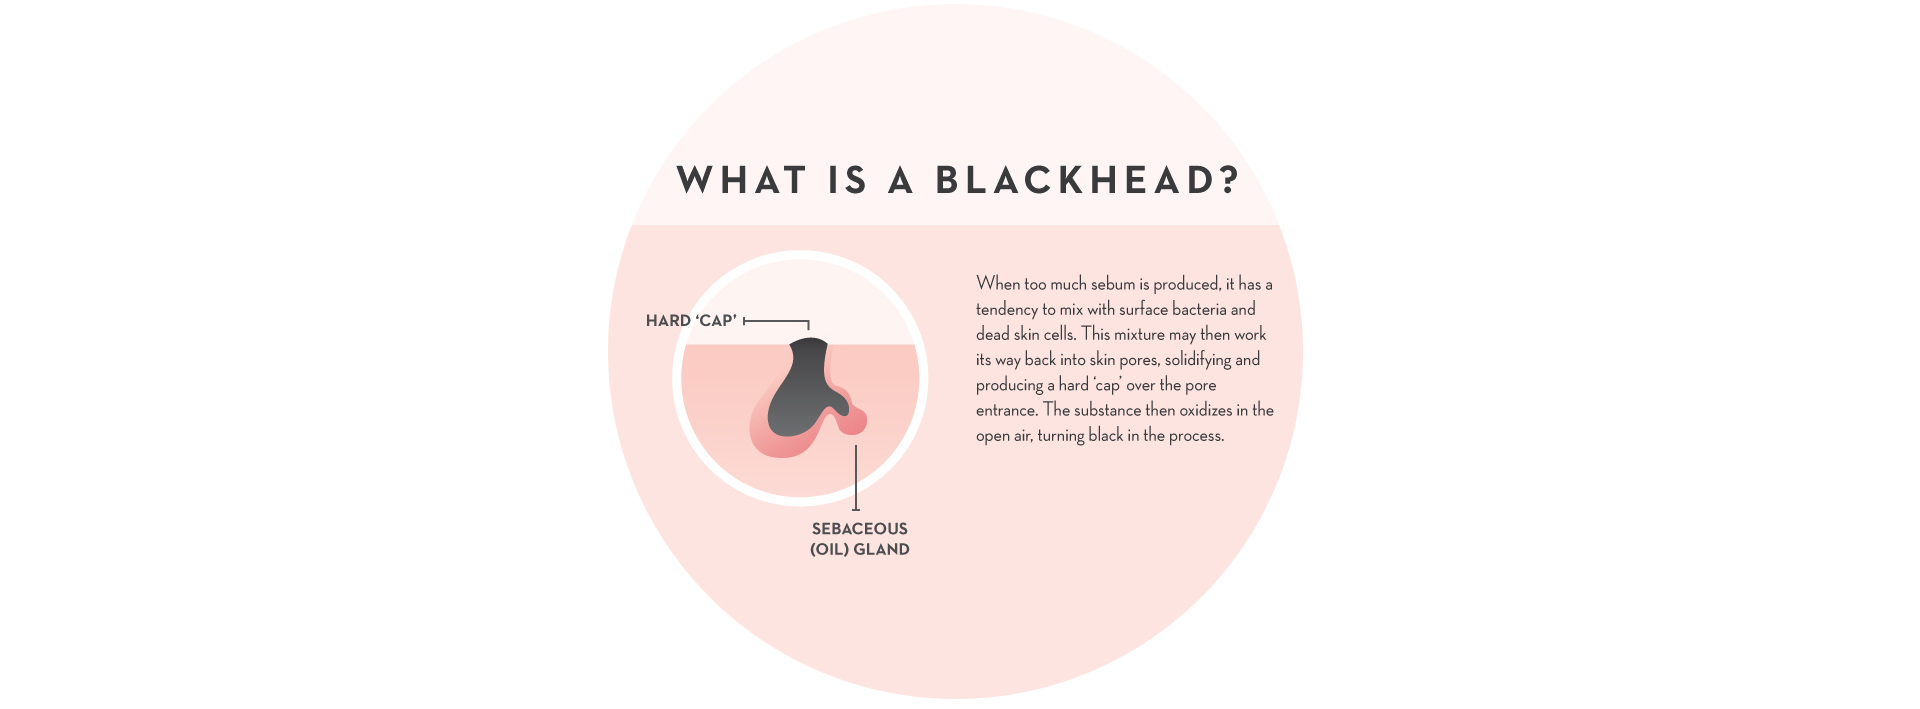 Process Flow Diagram Salicylic Acid The Definitive Guide To Eliminating Blackheads Mysa When Too Much Sebum Is Produced It Has A Tendency Mix With Surface Bacteria And Dead Skin Cells Then This Mixture May Work Its Way Back Into